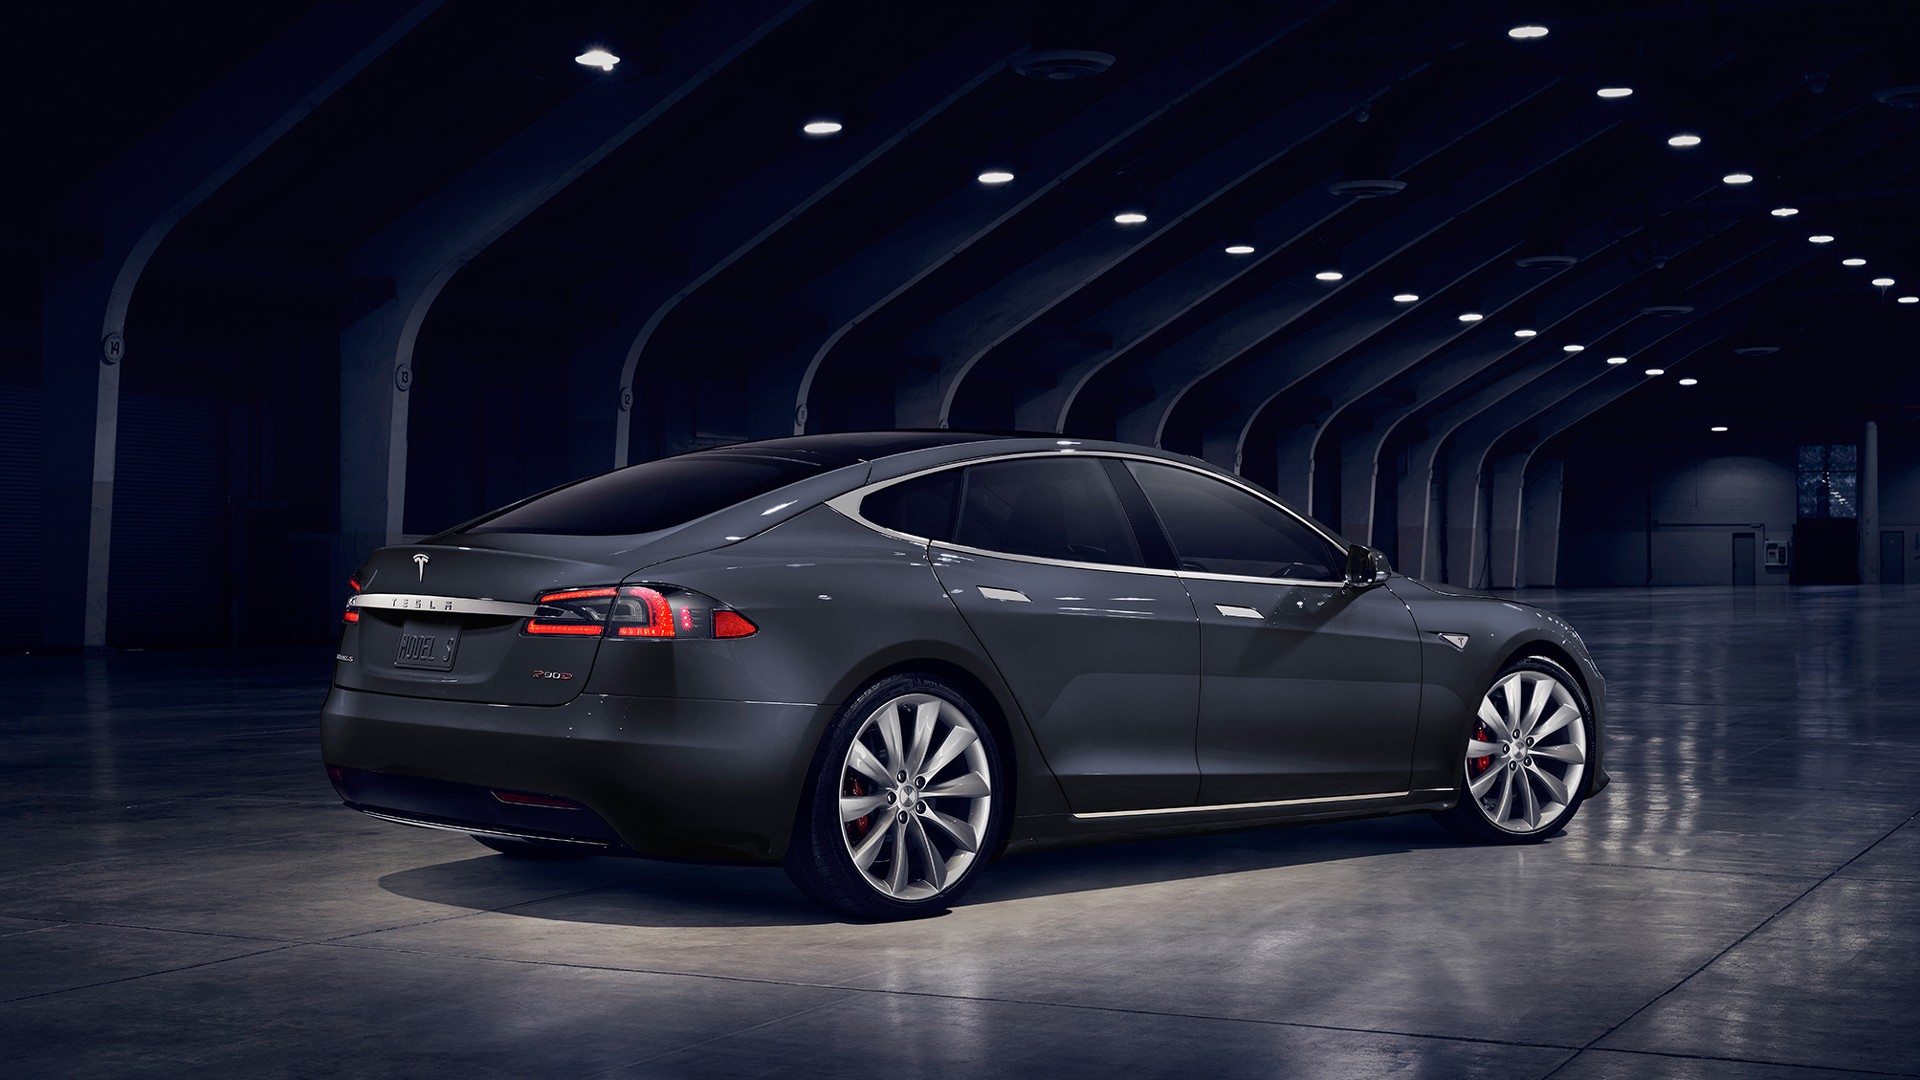 Tesla receives Dutch approval for 100-kWh battery pack